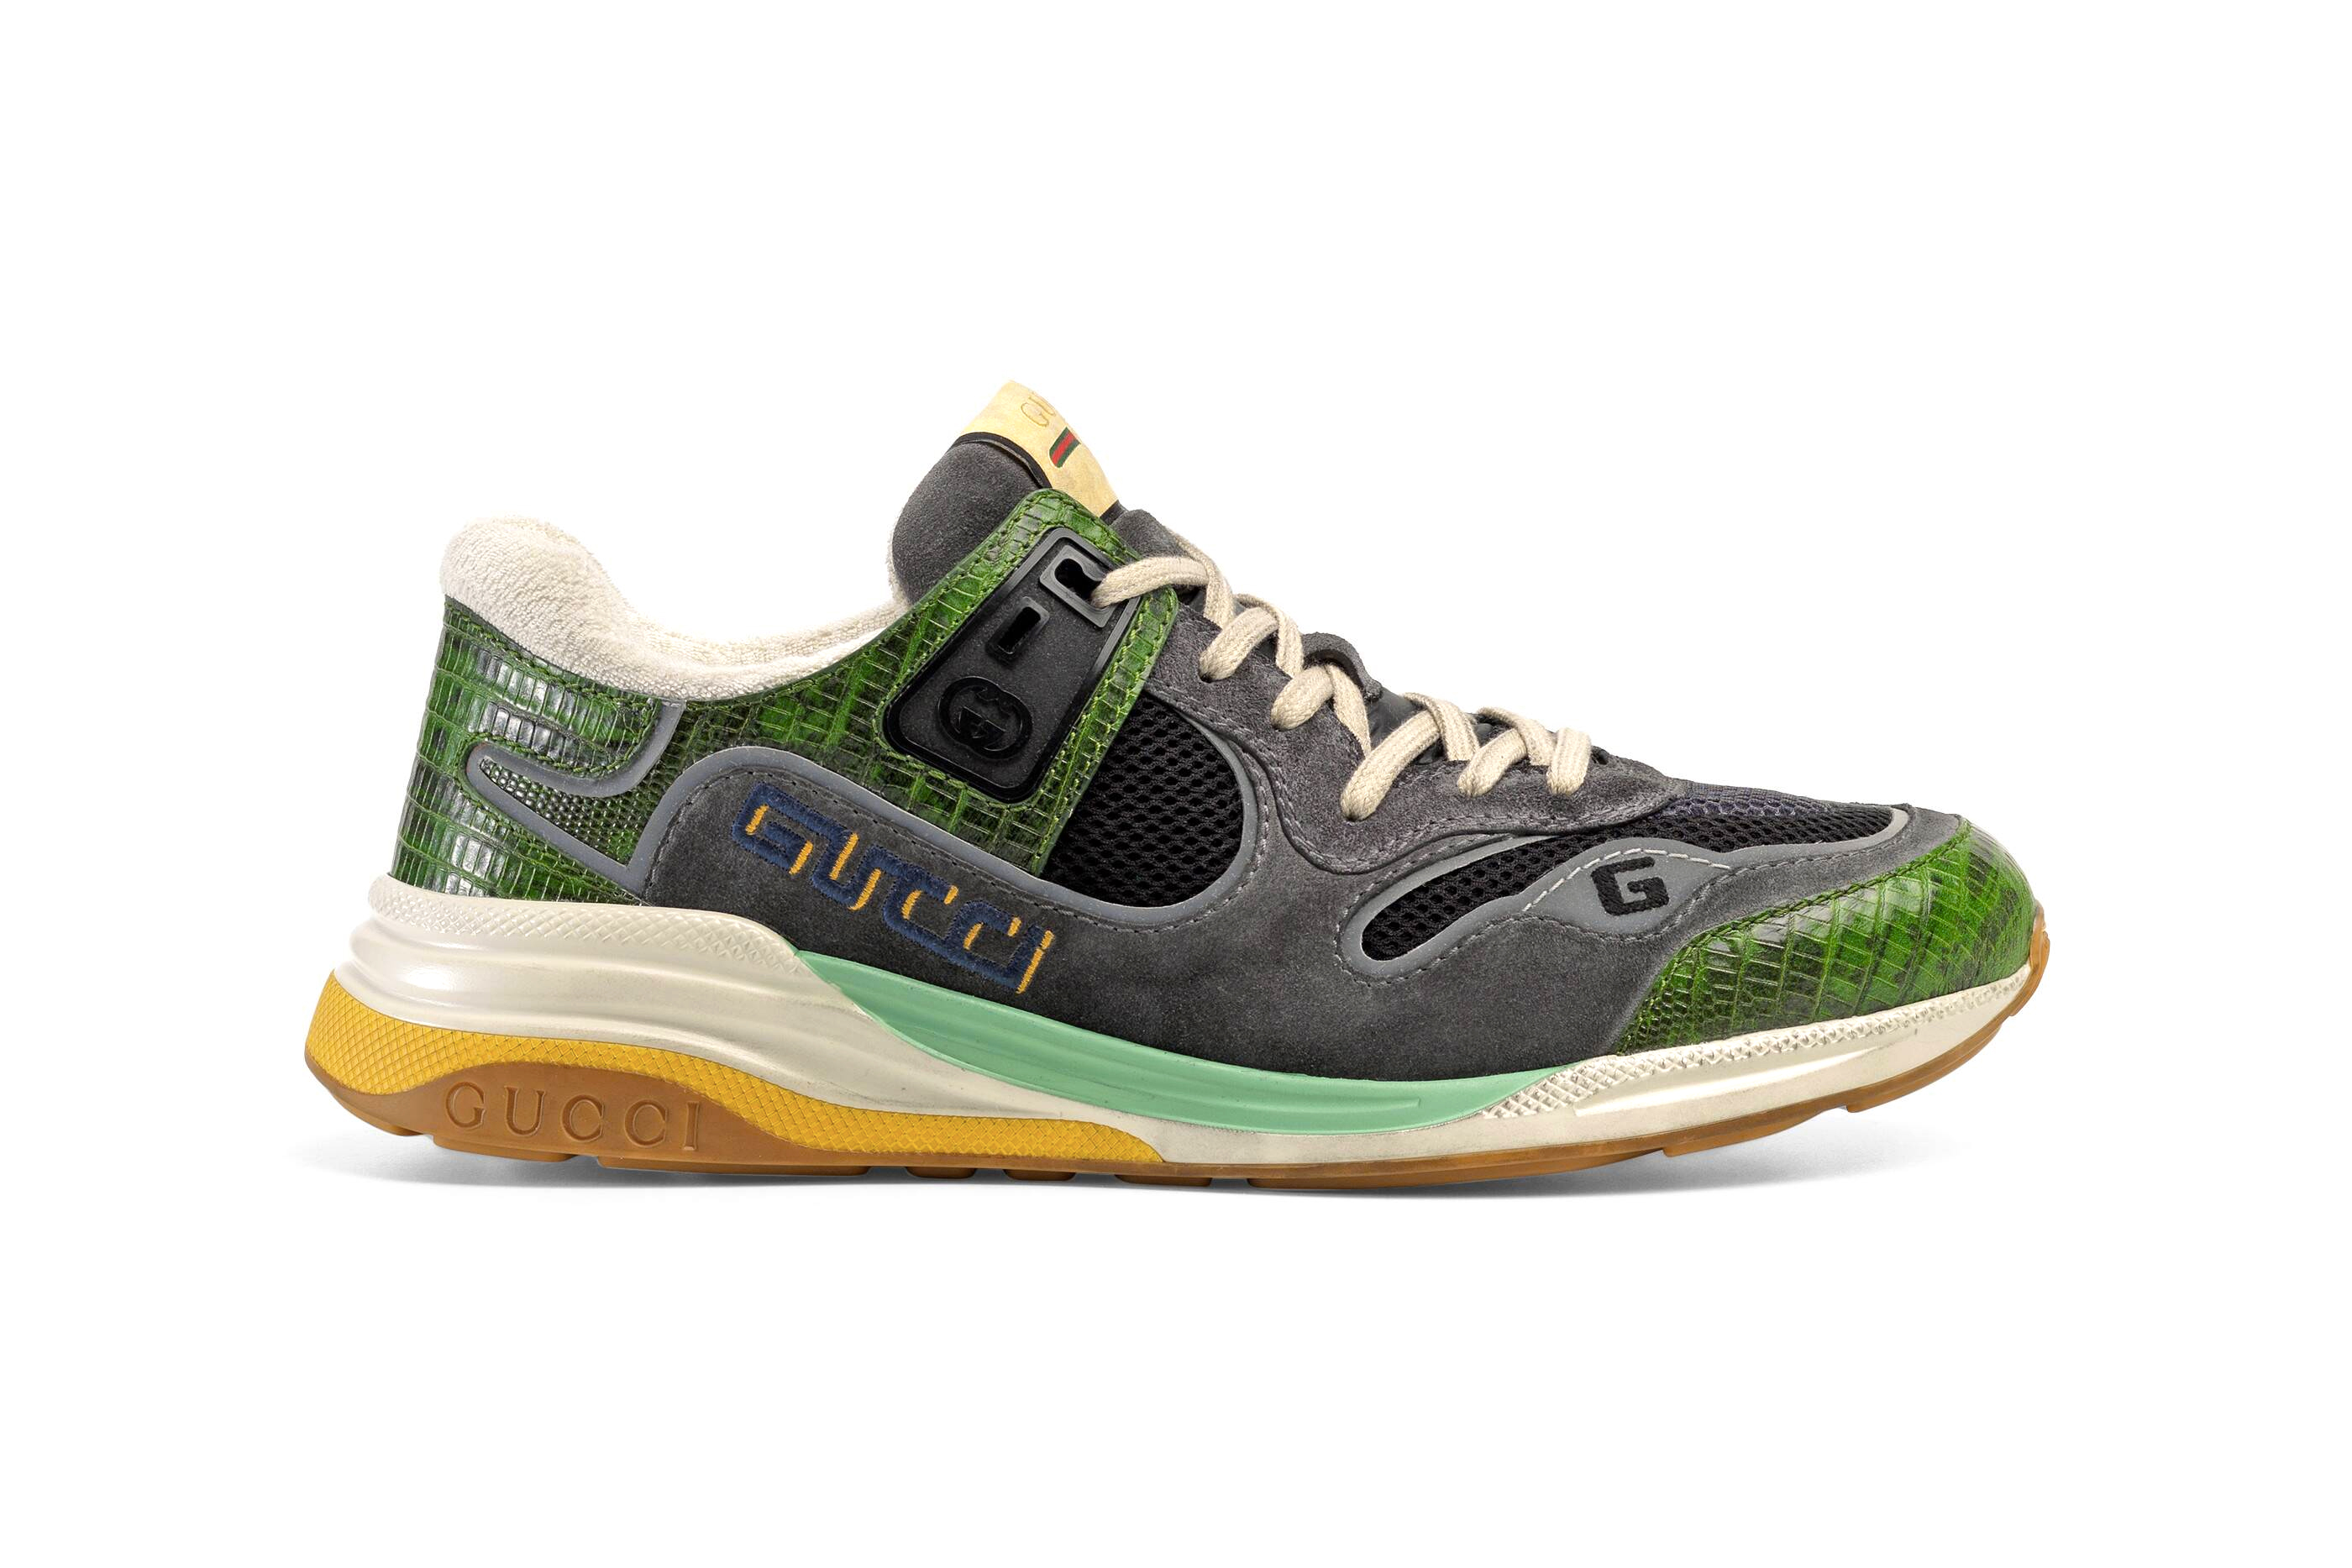 Gucci UltraPace Mixed-Material Sneaker